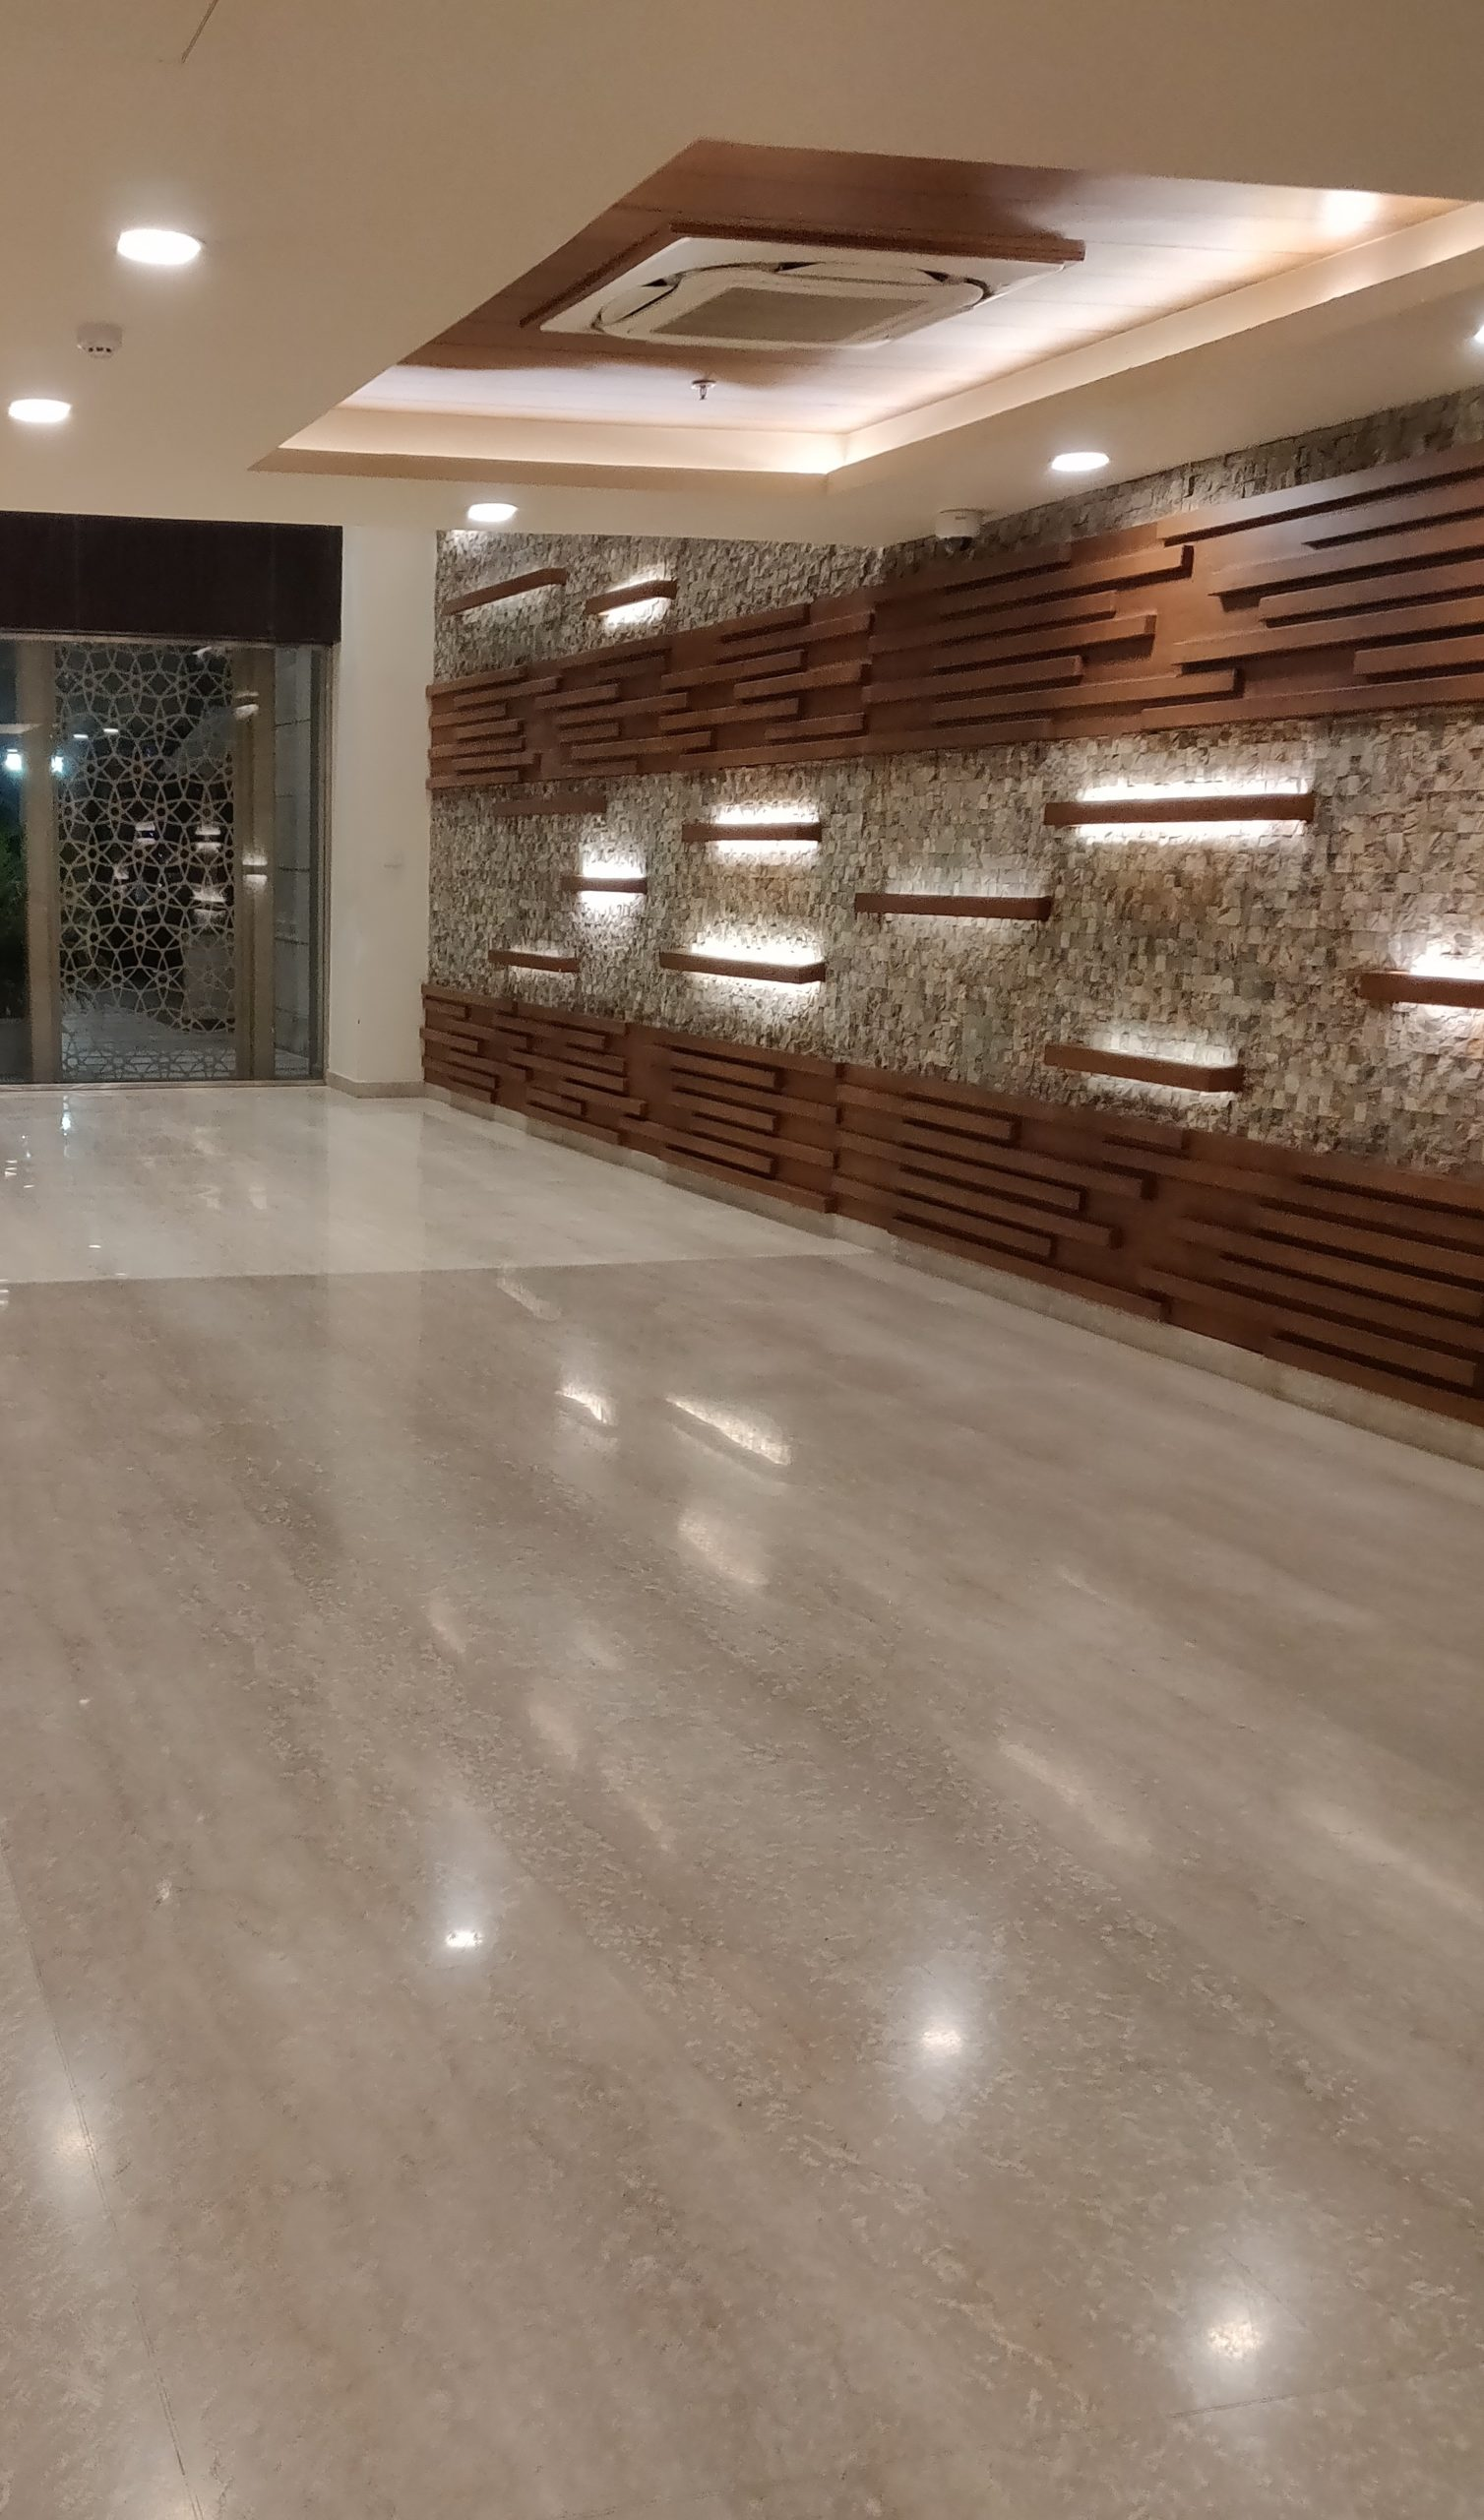 Ceramic tiles flooring,ceramic tiles laying procedure,ceramic floor tile near me,ceramic floor tile labour cost,ceramic floor tile market rat